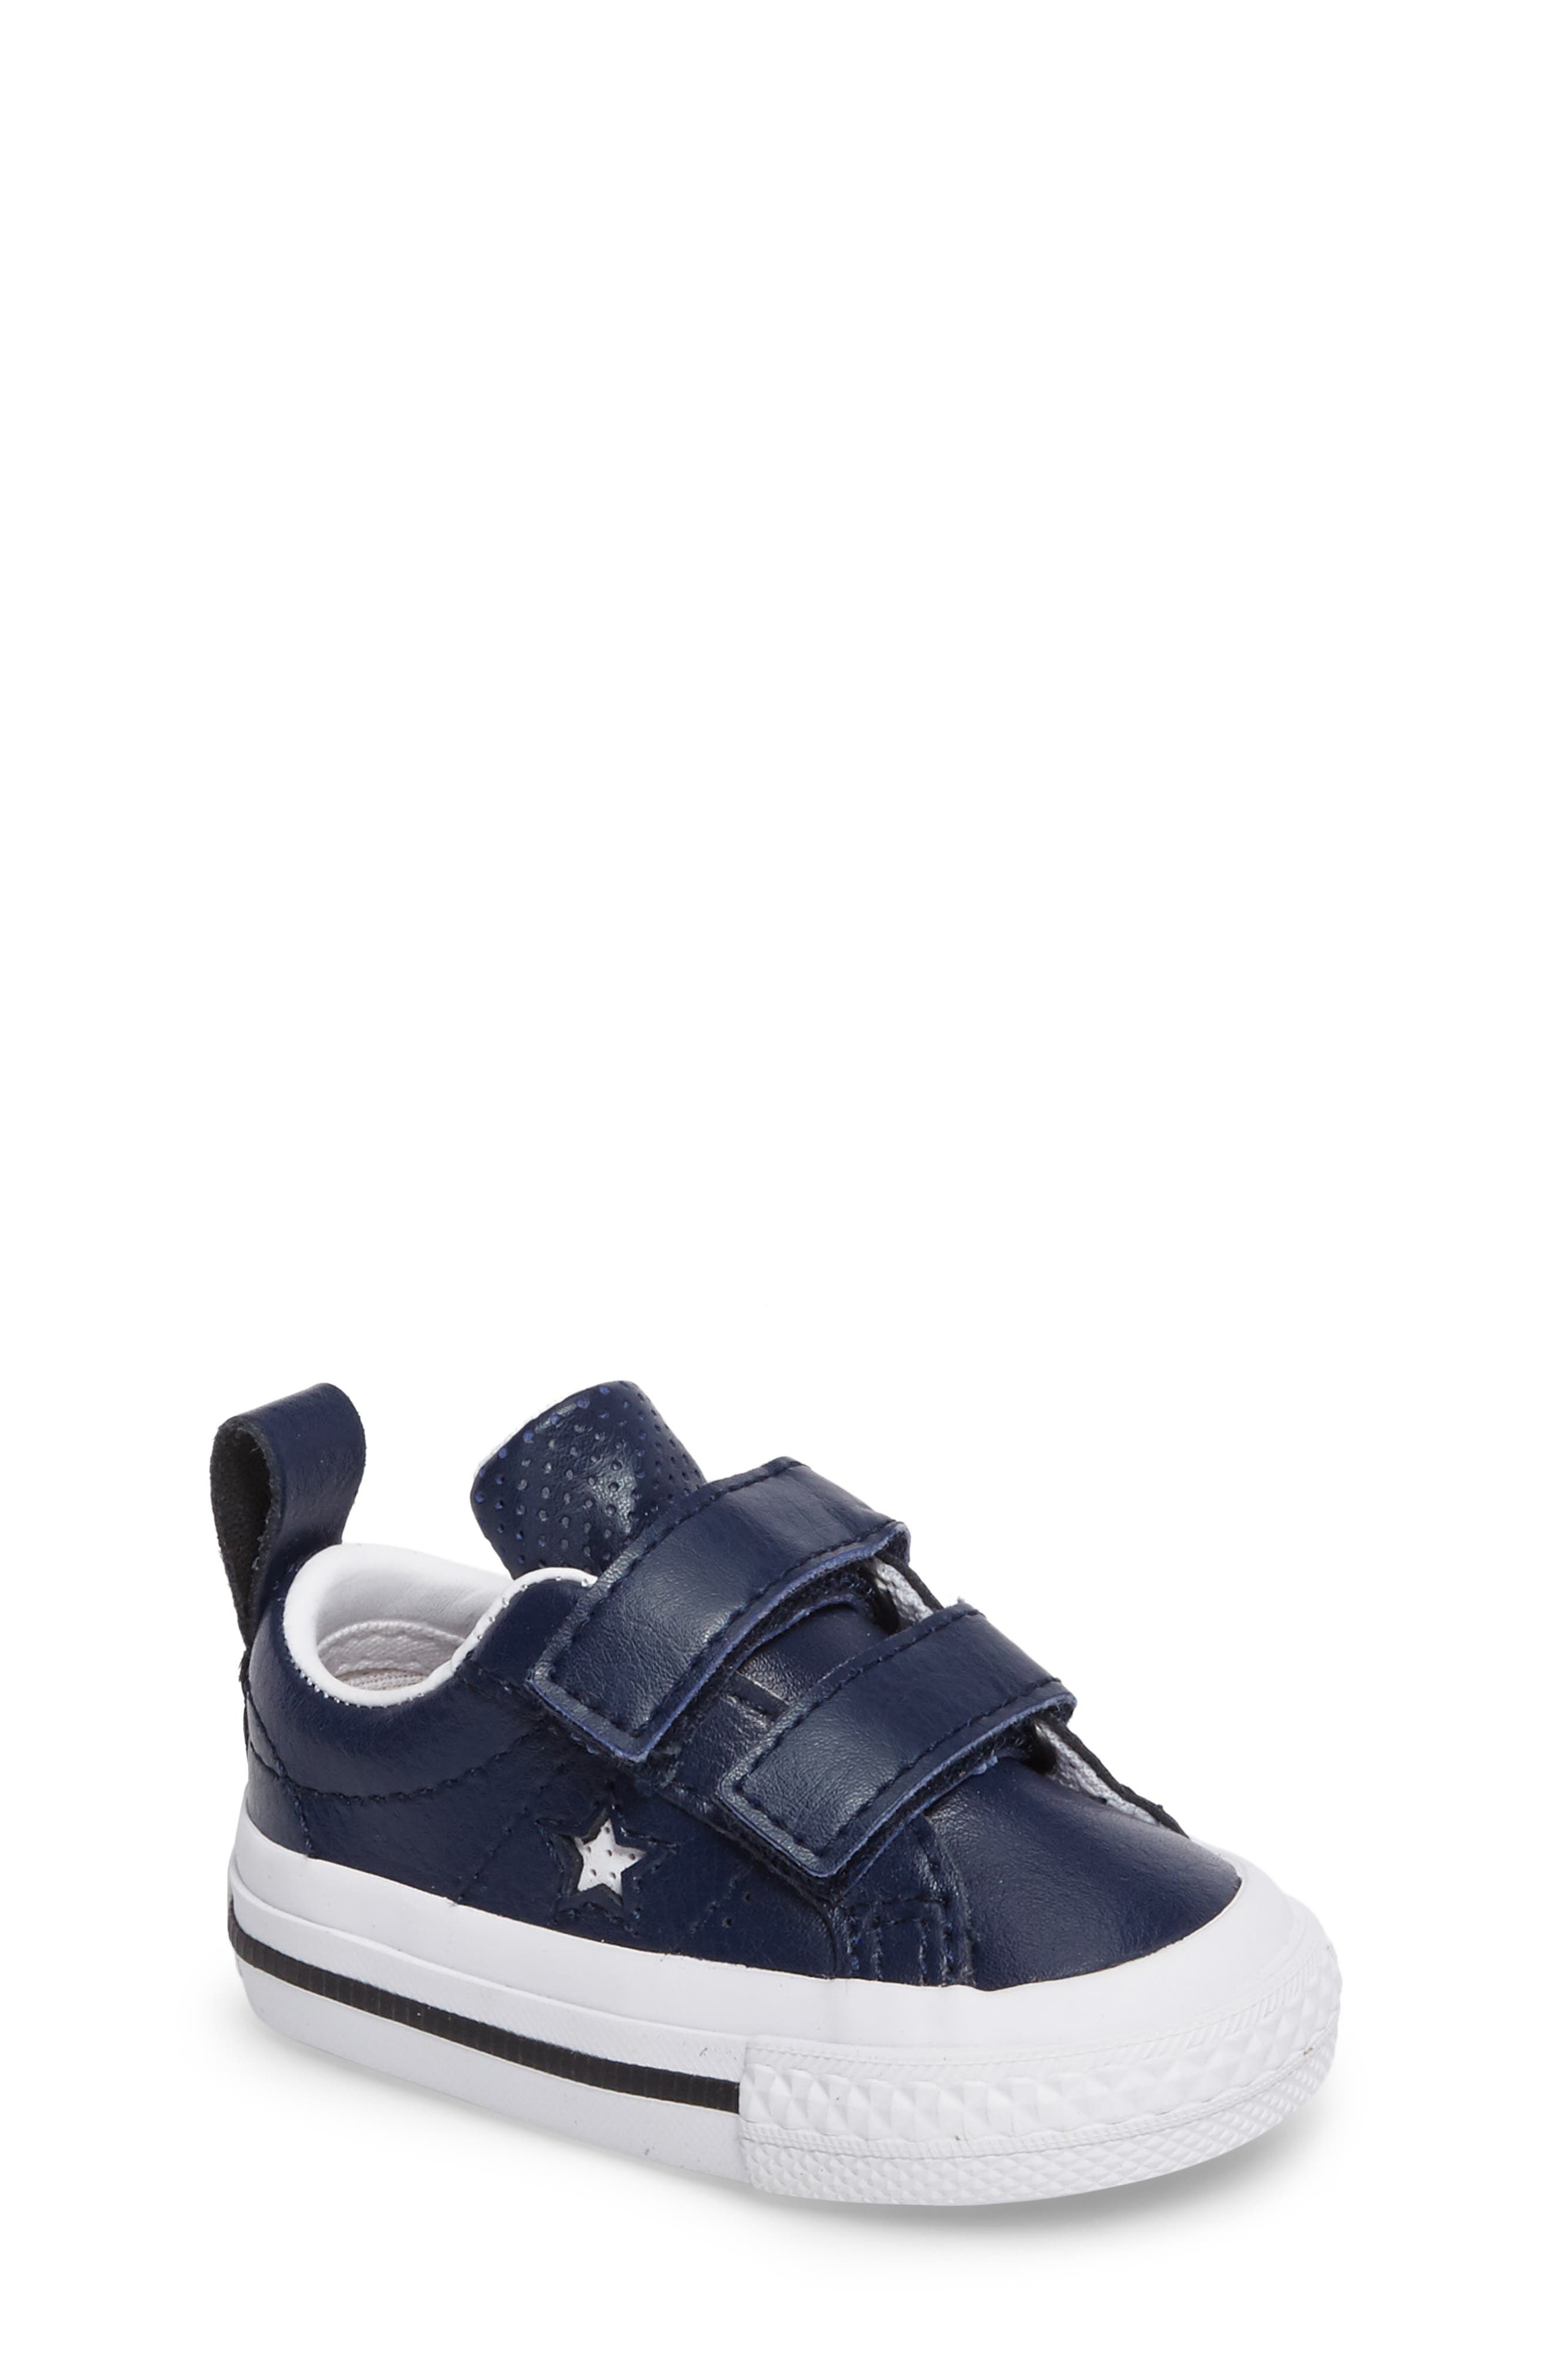 Main Image - Converse Chuck Taylor® All Star® One Star Sneaker (Baby, Walker & Toddler)